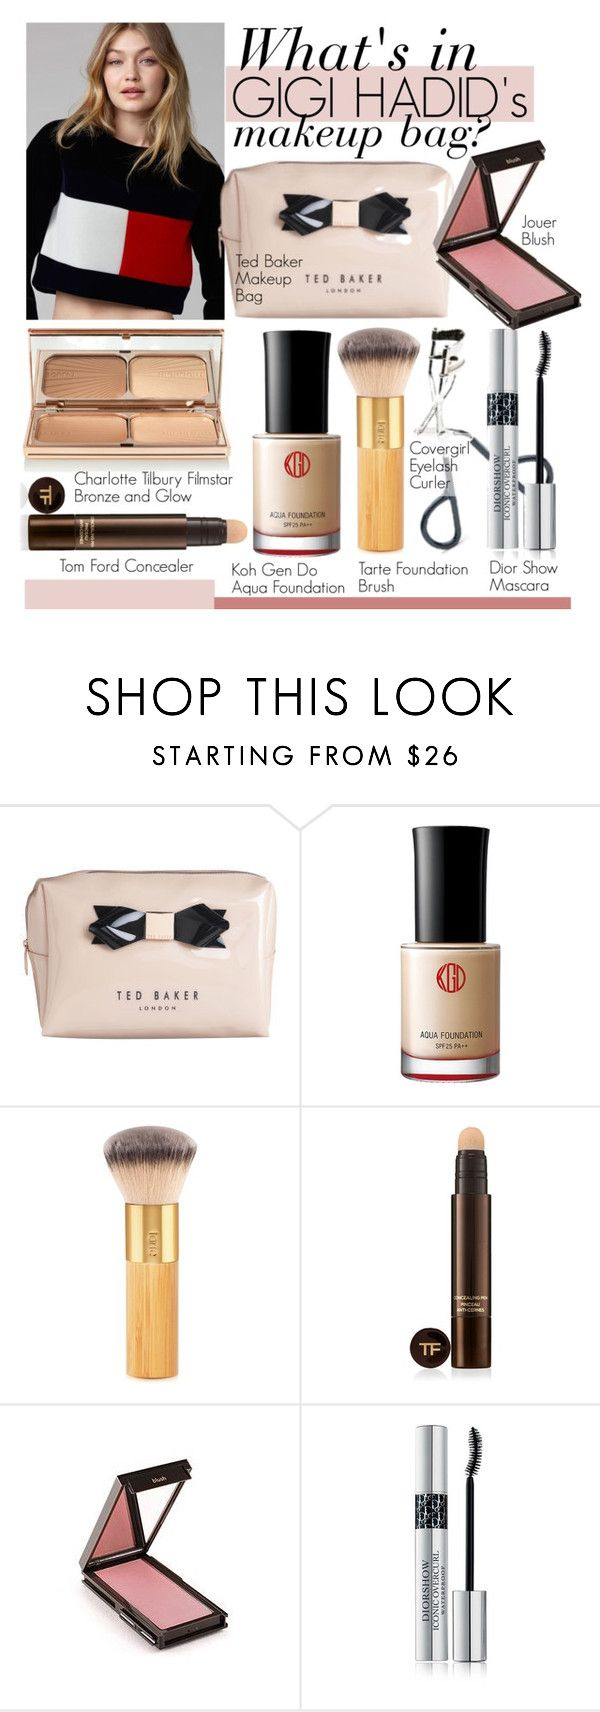 """""""INSIDE: Gigi Hadid's Makeup Bag"""" by eraining ❤ liked on Polyvore featuring beauty, Ted Baker, Koh Gen Do, tarte, Tom Ford, Jouer, Christian Dior, Charlotte Tilbury, makeup and gigihadid"""